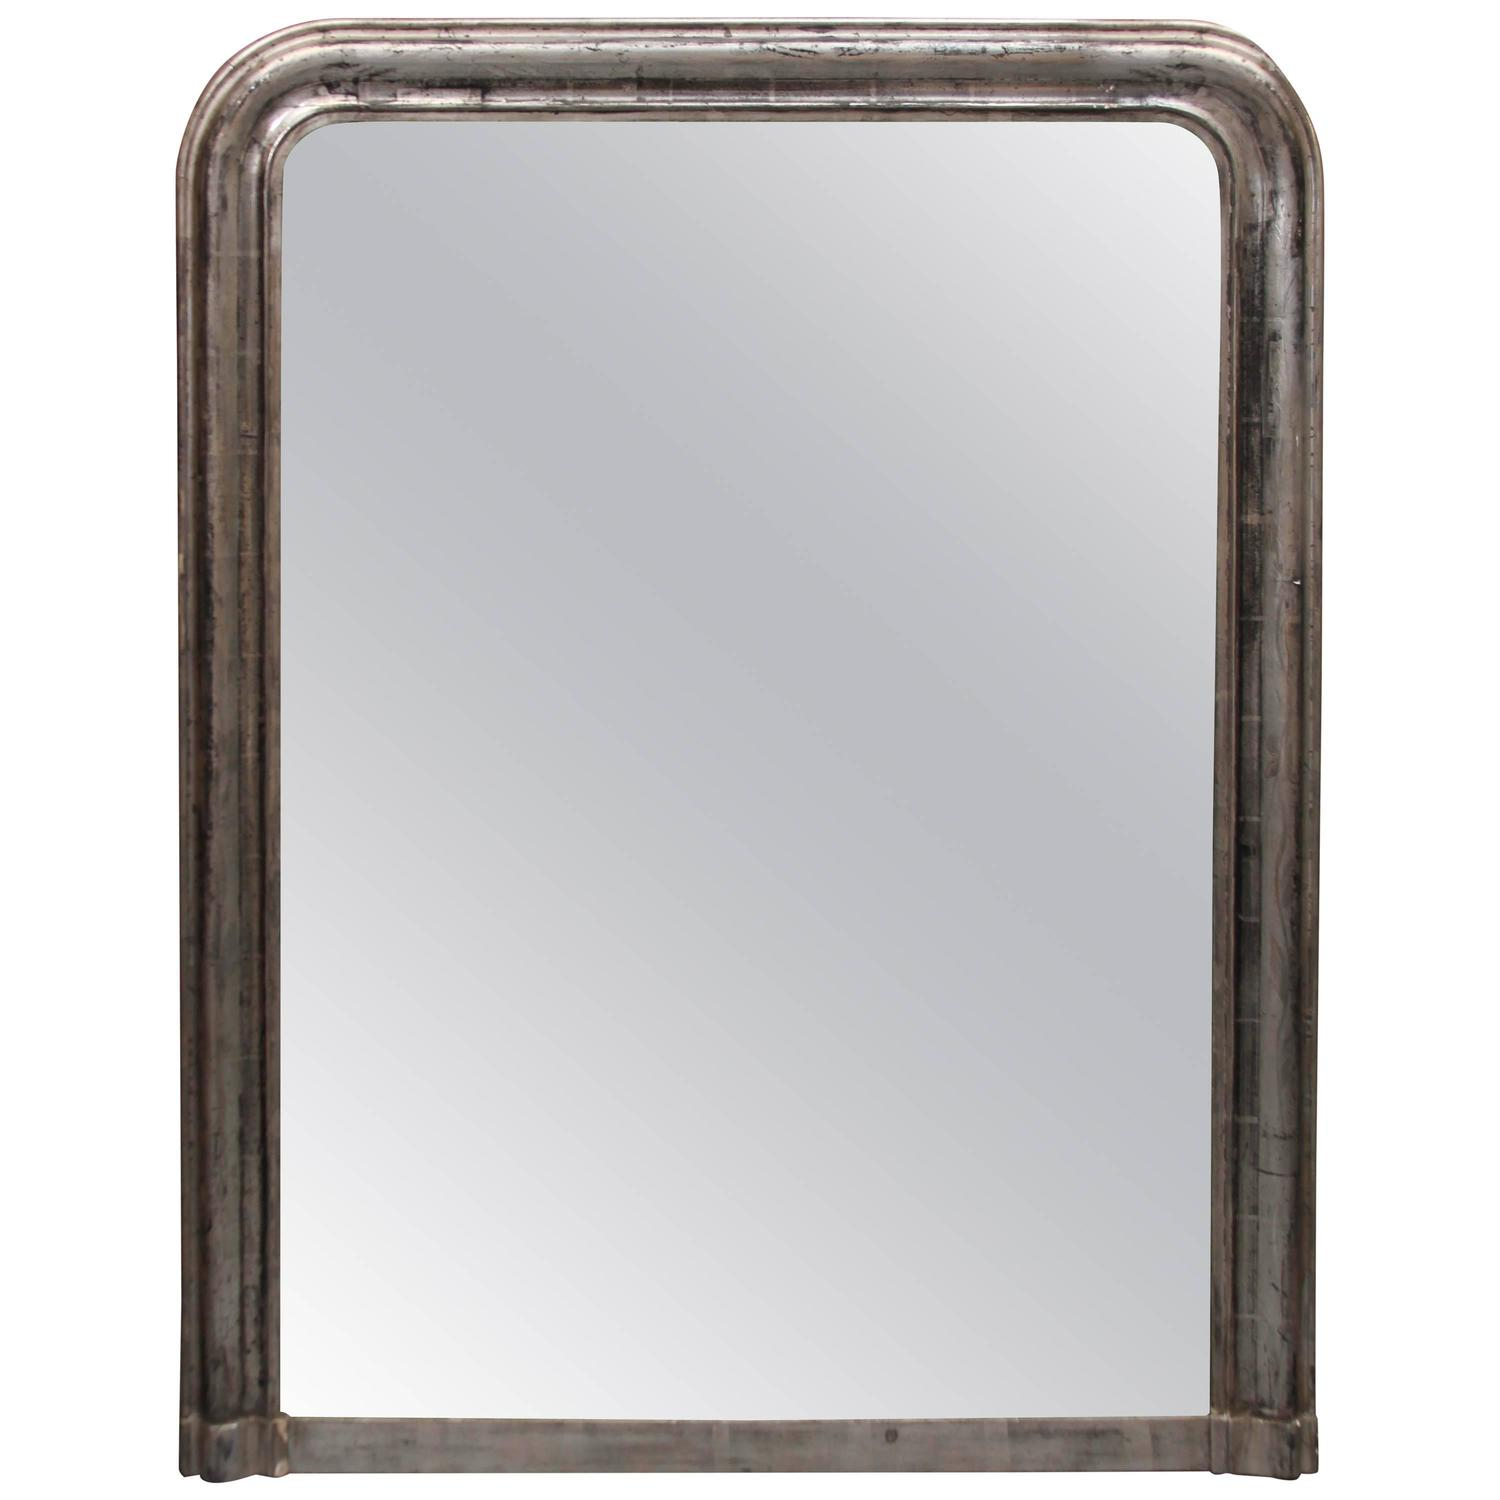 Large silver mirror for sale at 1stdibs for Silver mirrors for sale